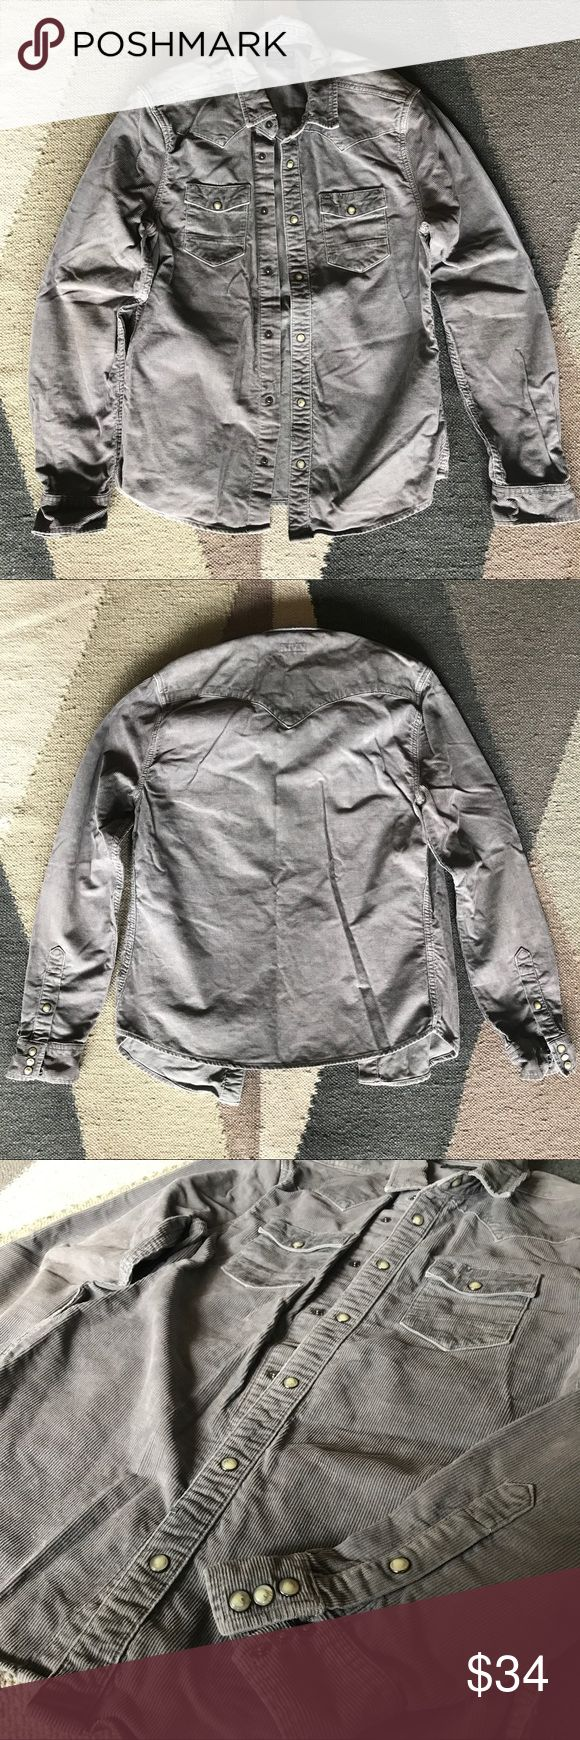 Men's All Saints Gray Corduroy Shirt Western style shirt with button snaps throughout front and cuff. Slim fit with minimal signs of wear (some discoloration in the inside elbow portion which will be hidden when worn), great used condition. All Saints Shirts Casual Button Down Shirts